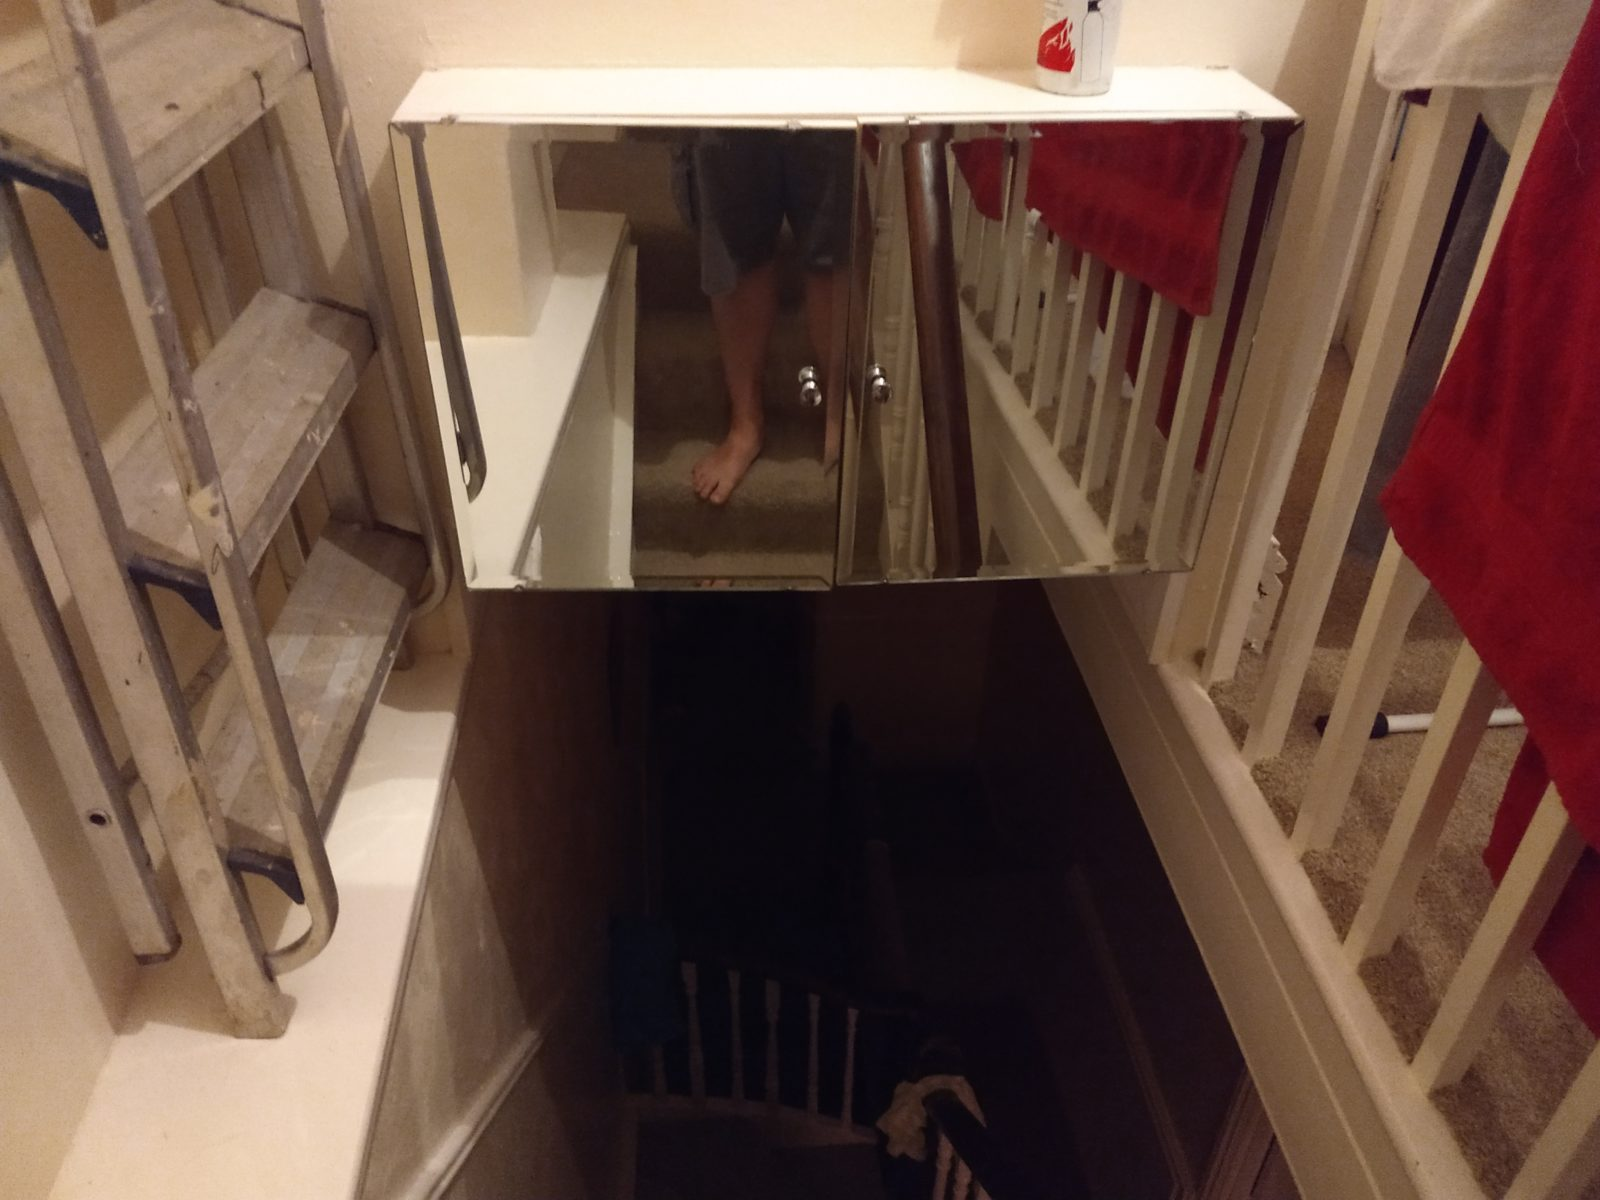 Mirrored bathroom cabinet above the staircase